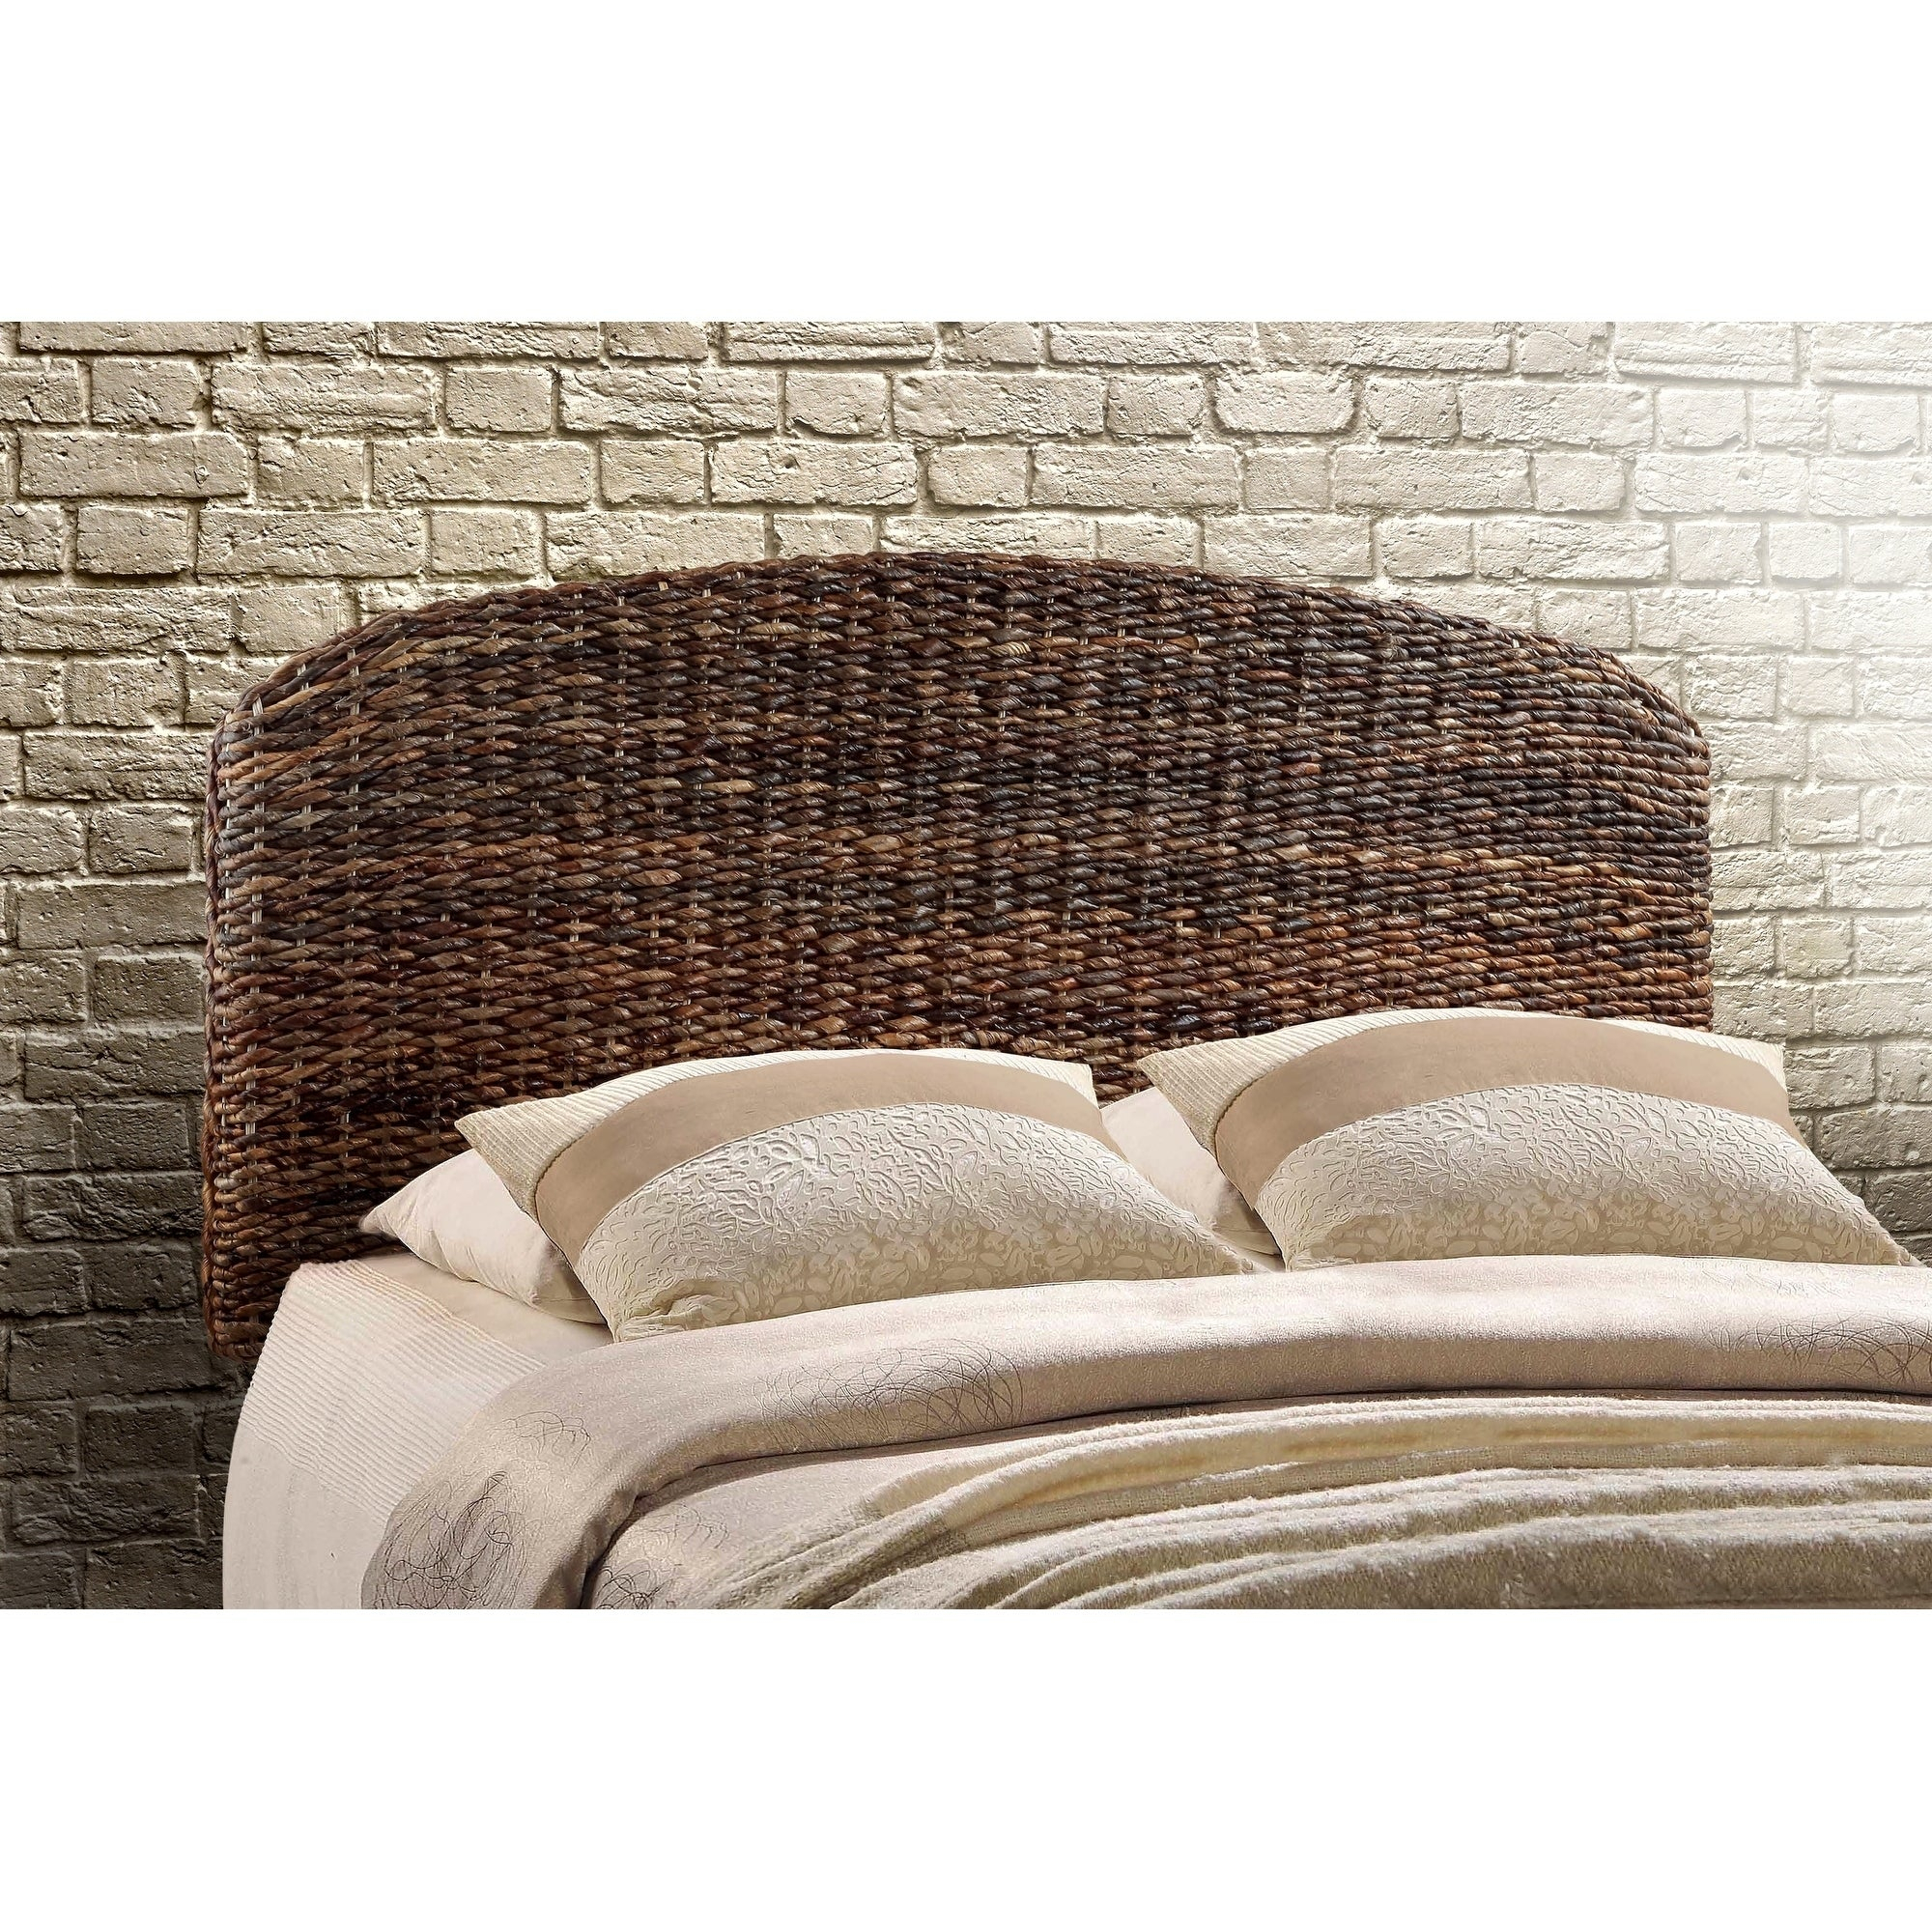 Current Shop Raja Queen Size Handwoven Banana Leaf Headboard – On Sale Throughout 4 Piece Handwoven Wheel Wall Decor Sets (View 18 of 20)